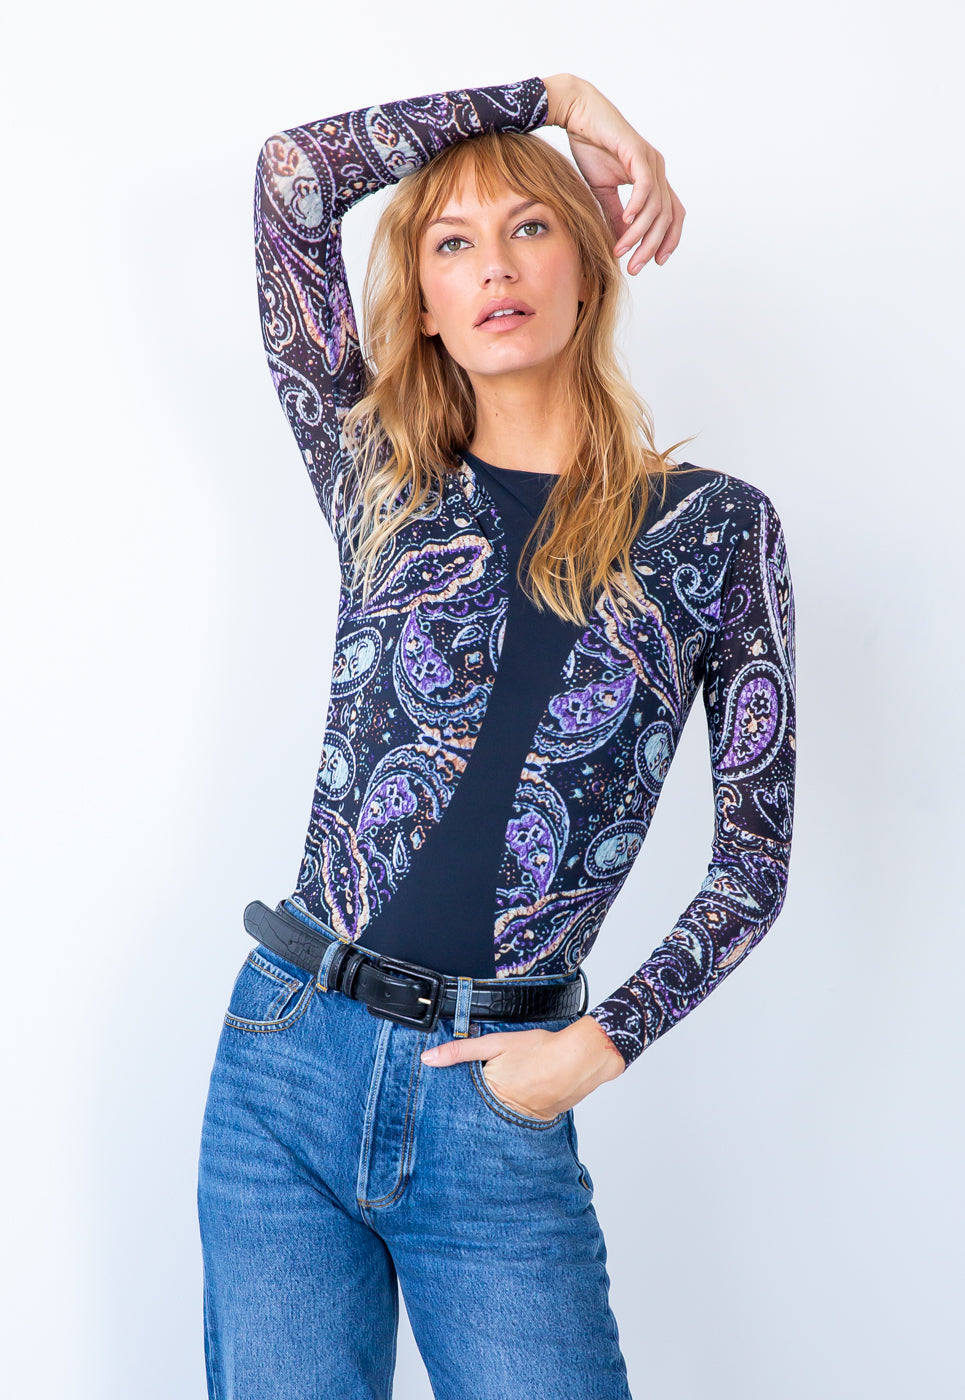 Retro Paisley Lavender/Black - Florence Double Sheer Top